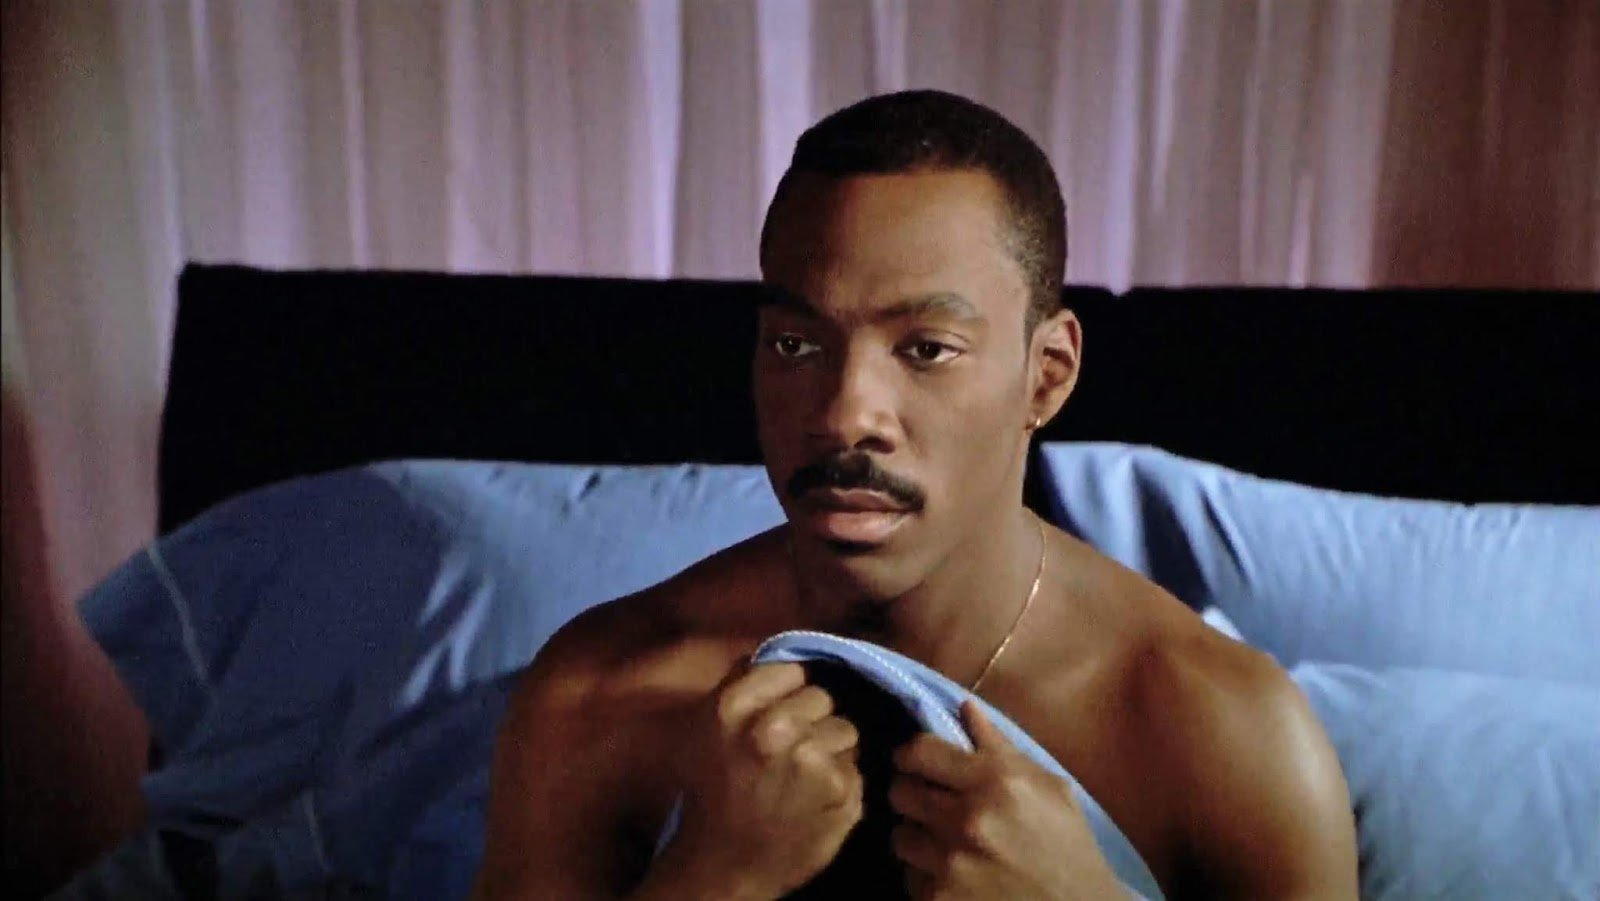 g15 1 20 Things You May Not Have Realised About Eddie Murphy